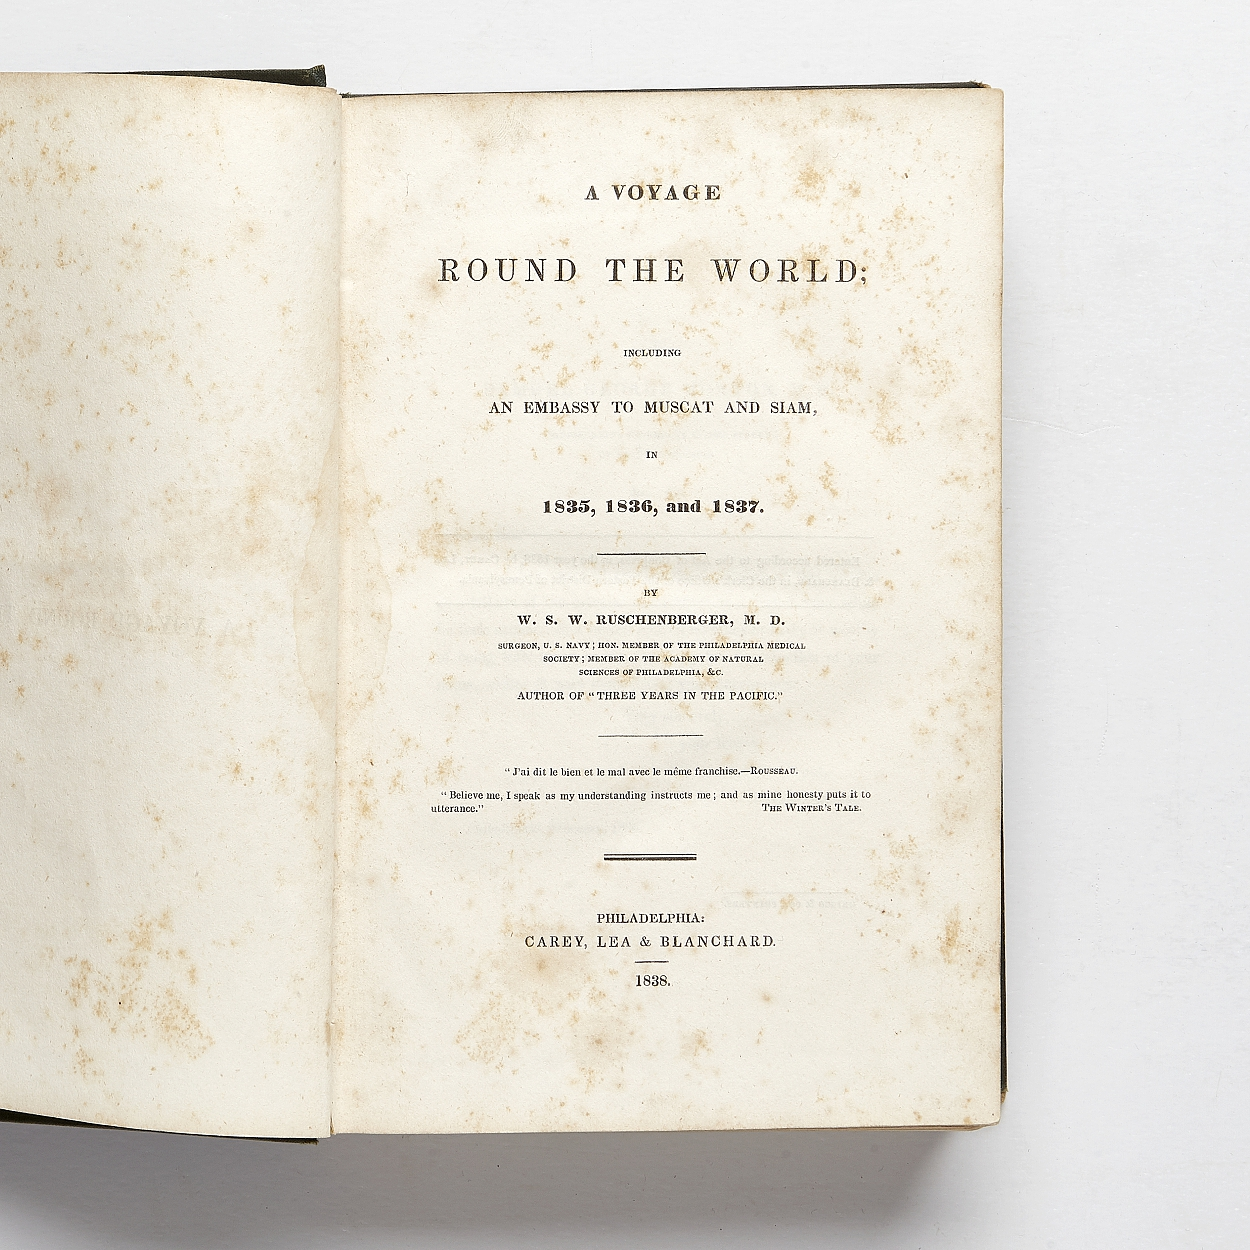 Ruschenberger's A voyage round the World 1838